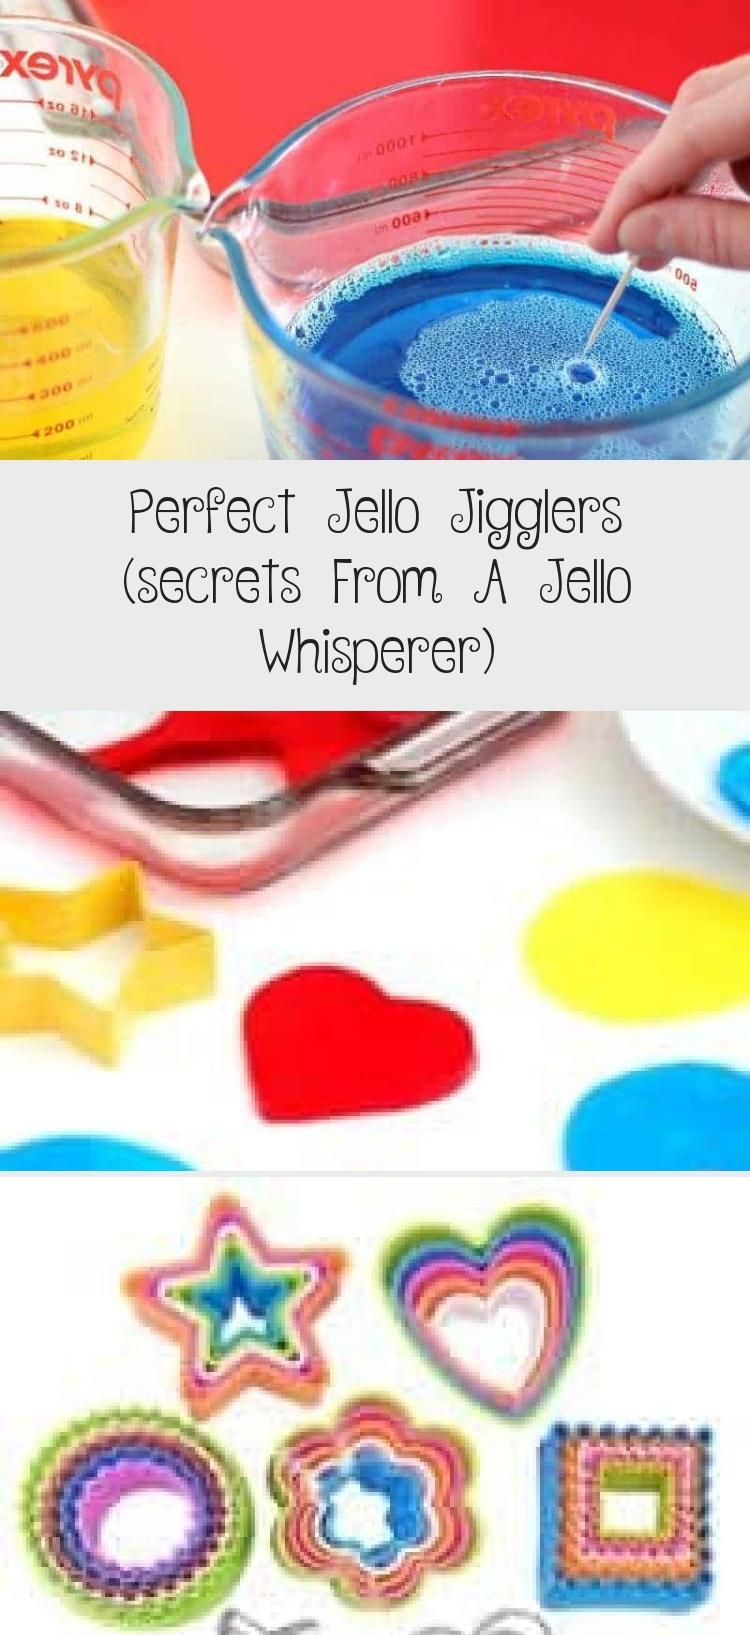 If you are looking for a fun kid-friendly recipe for summer, birthday parties, or even just activities for kids involving sensory play this is great. This is the best recipe for Jello Jigglers ever! Jello is such a fun dessert. Jello is so versatile, it can be made for Valentine's Day, Easter, Halloween, Christmas, whatever! #jellorecipe #jellojigglers #kidfriendly #SimpleRecipesforkids #RecipesforkidsSweet #CookieRecipesforkids #CleanEatingRecipesforkids #RecipesforkidsToddlers